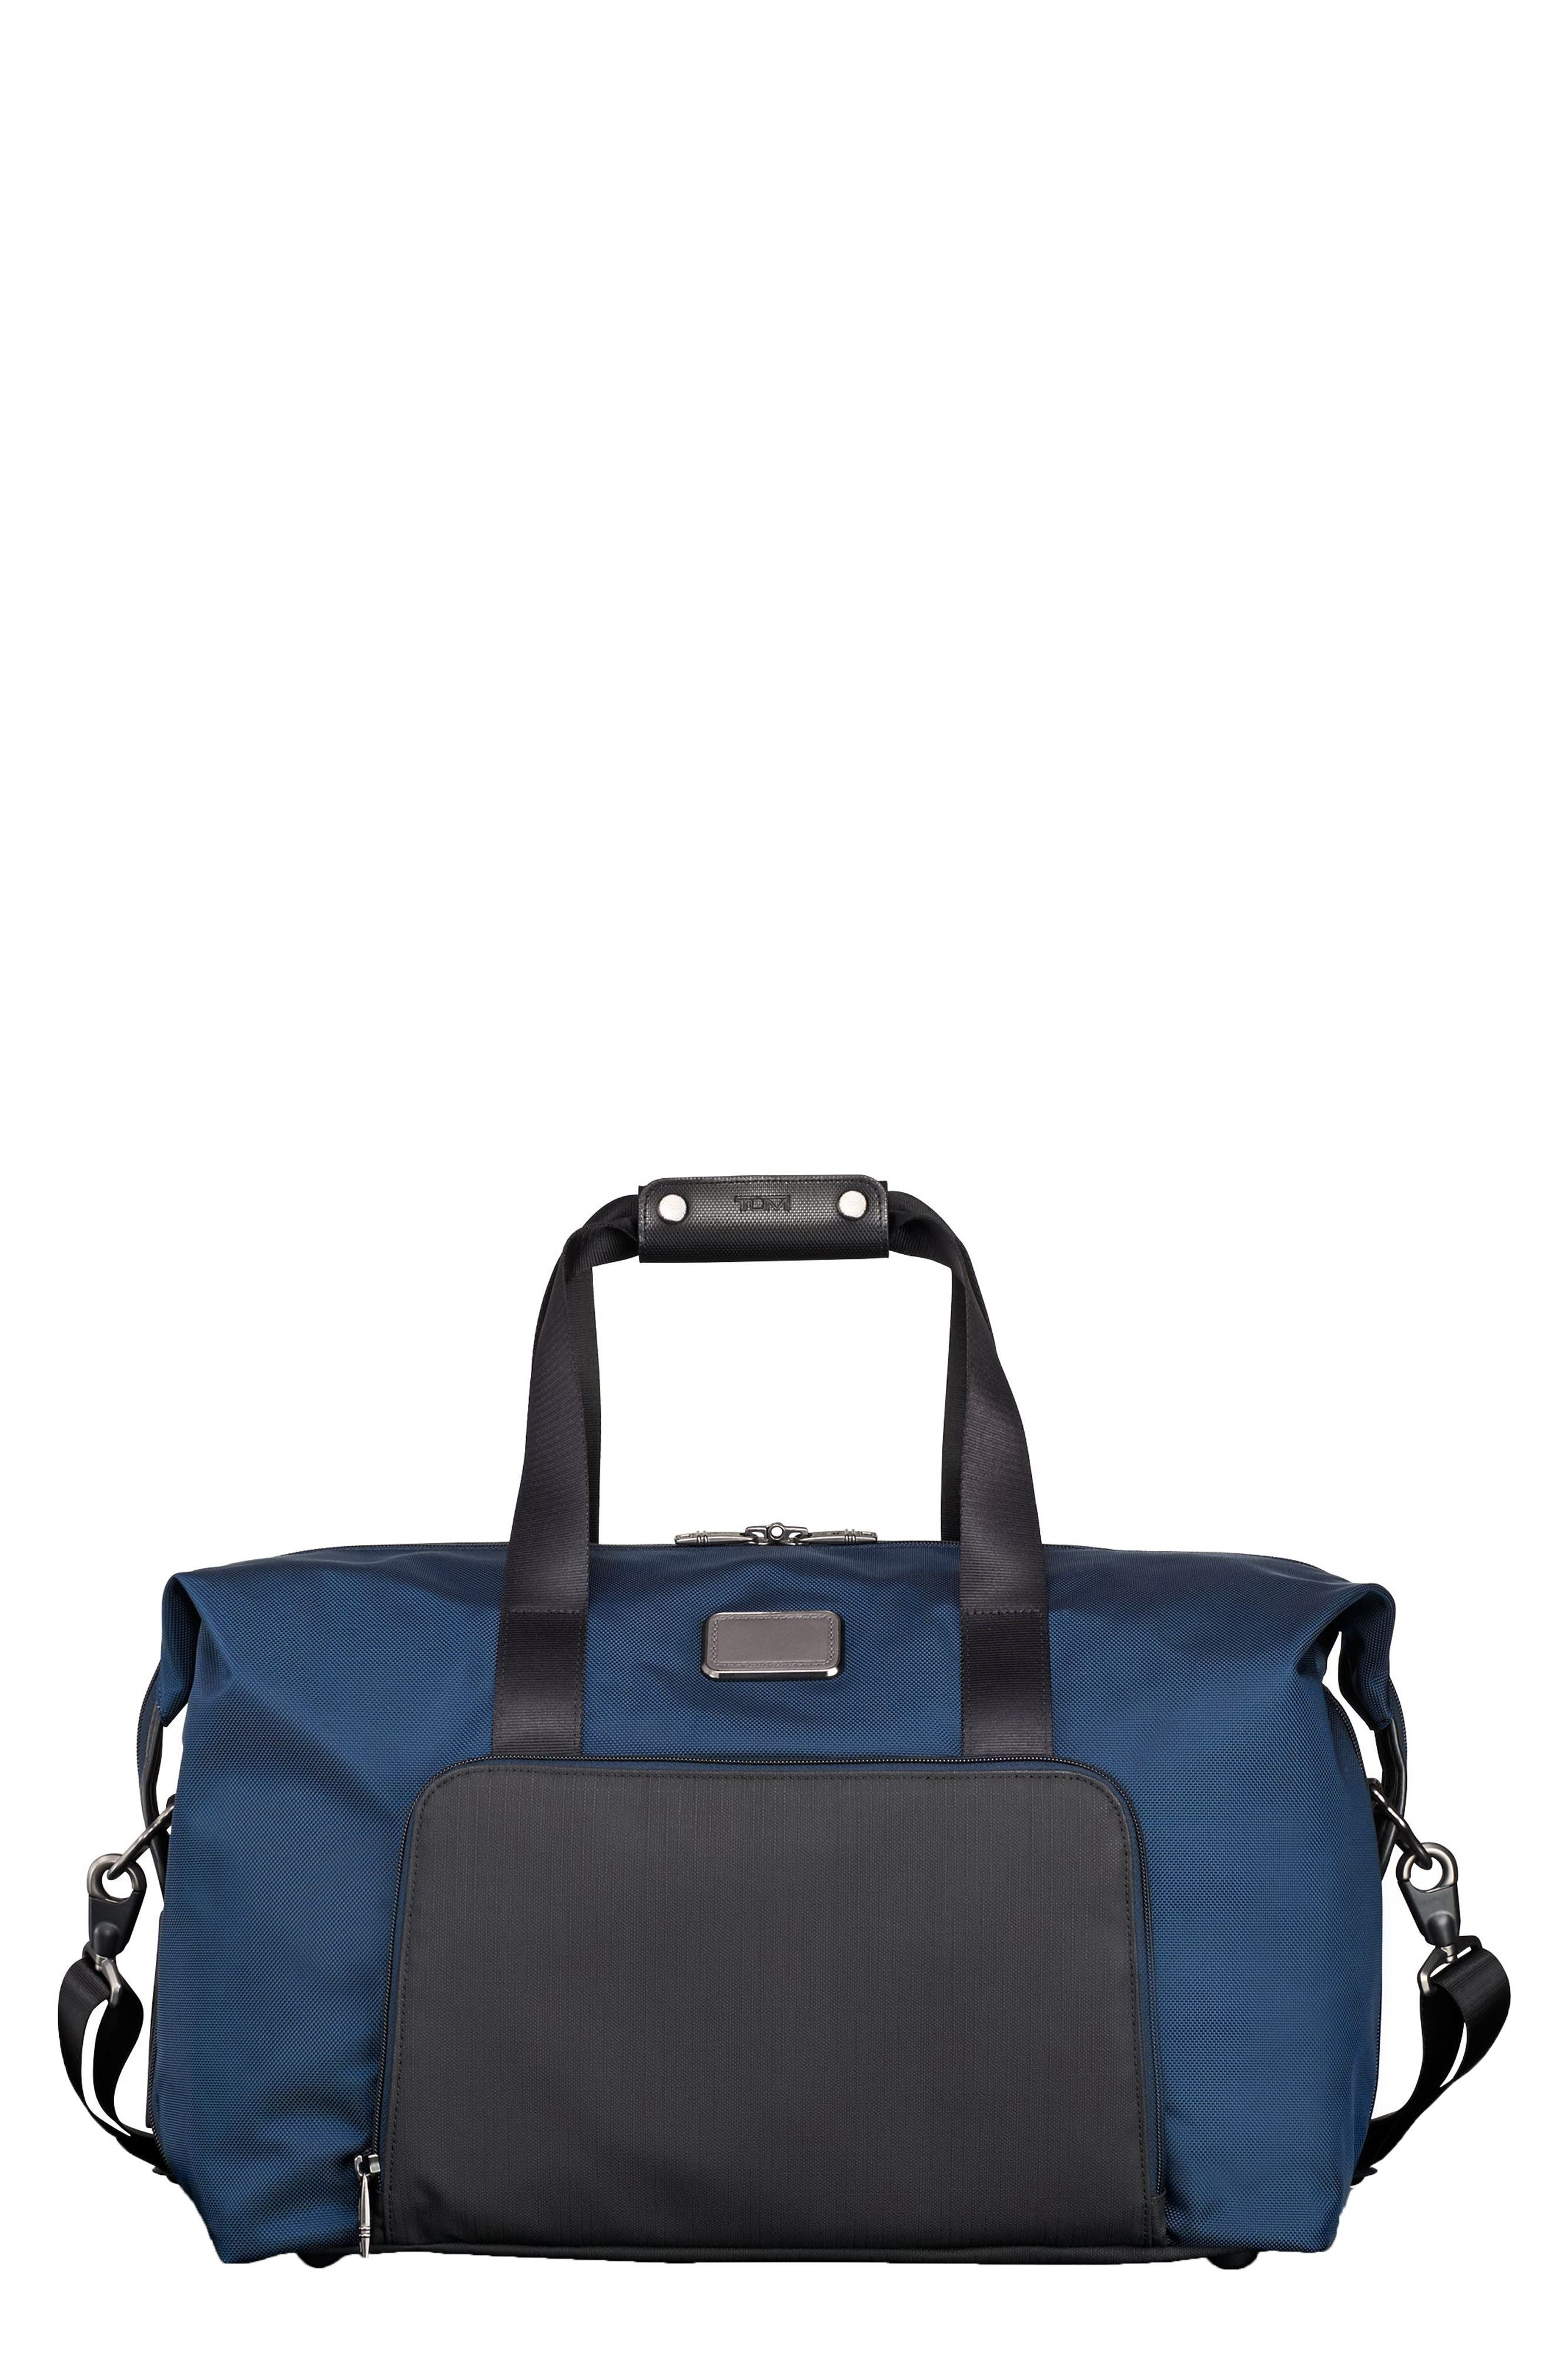 Alpha 2 Expandable Travel Satchel,                             Main thumbnail 1, color,                             421